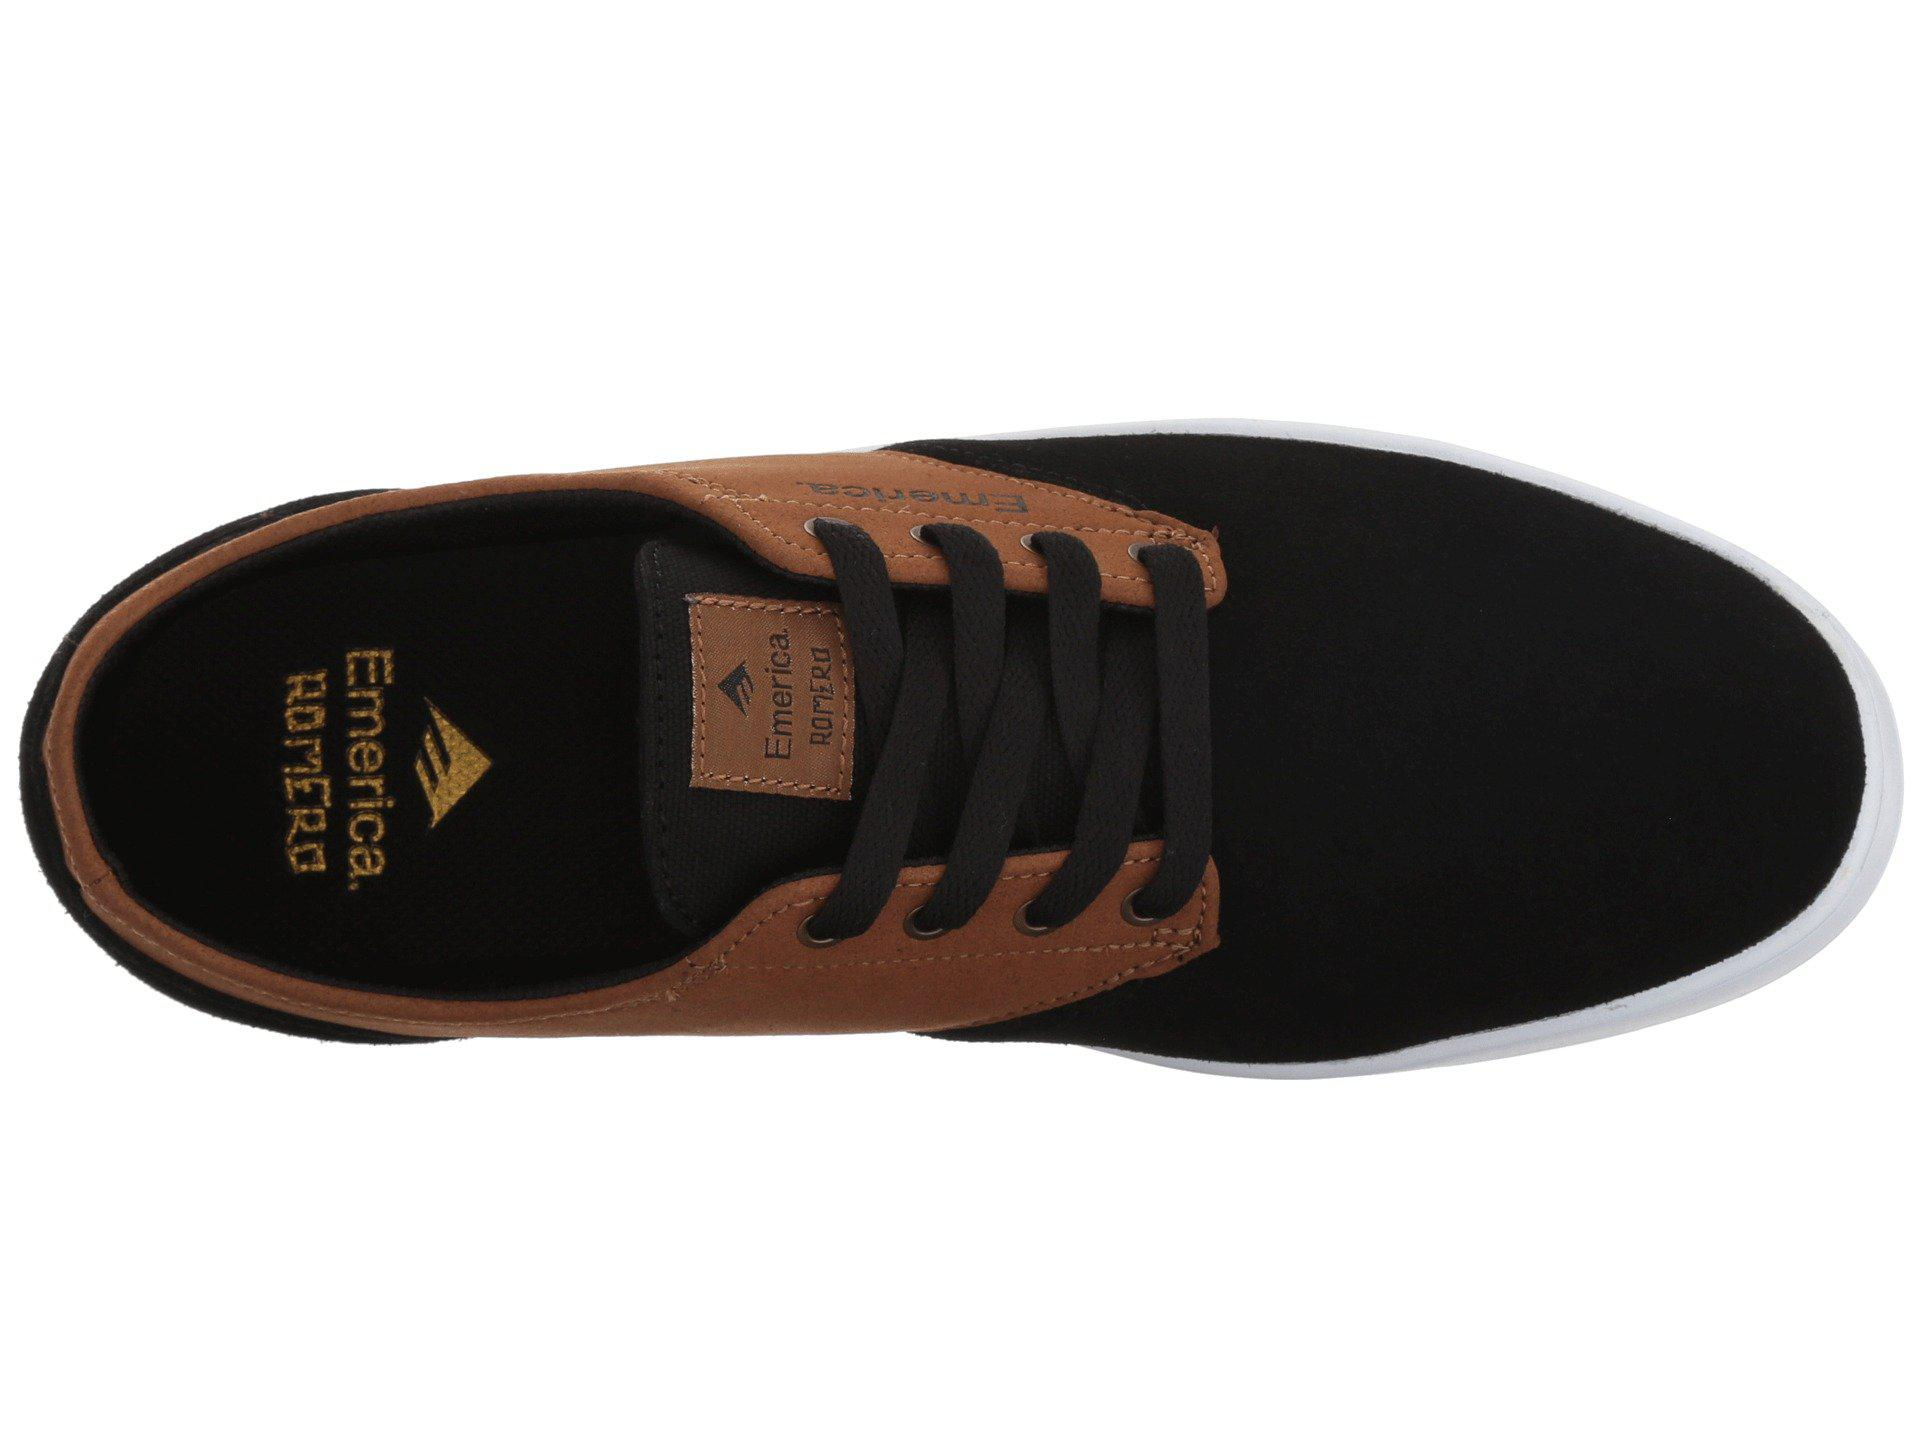 204a2b00f9bbb3 Lyst - Emerica The Romero Laced (black brown) Men s Skate Shoes in ...